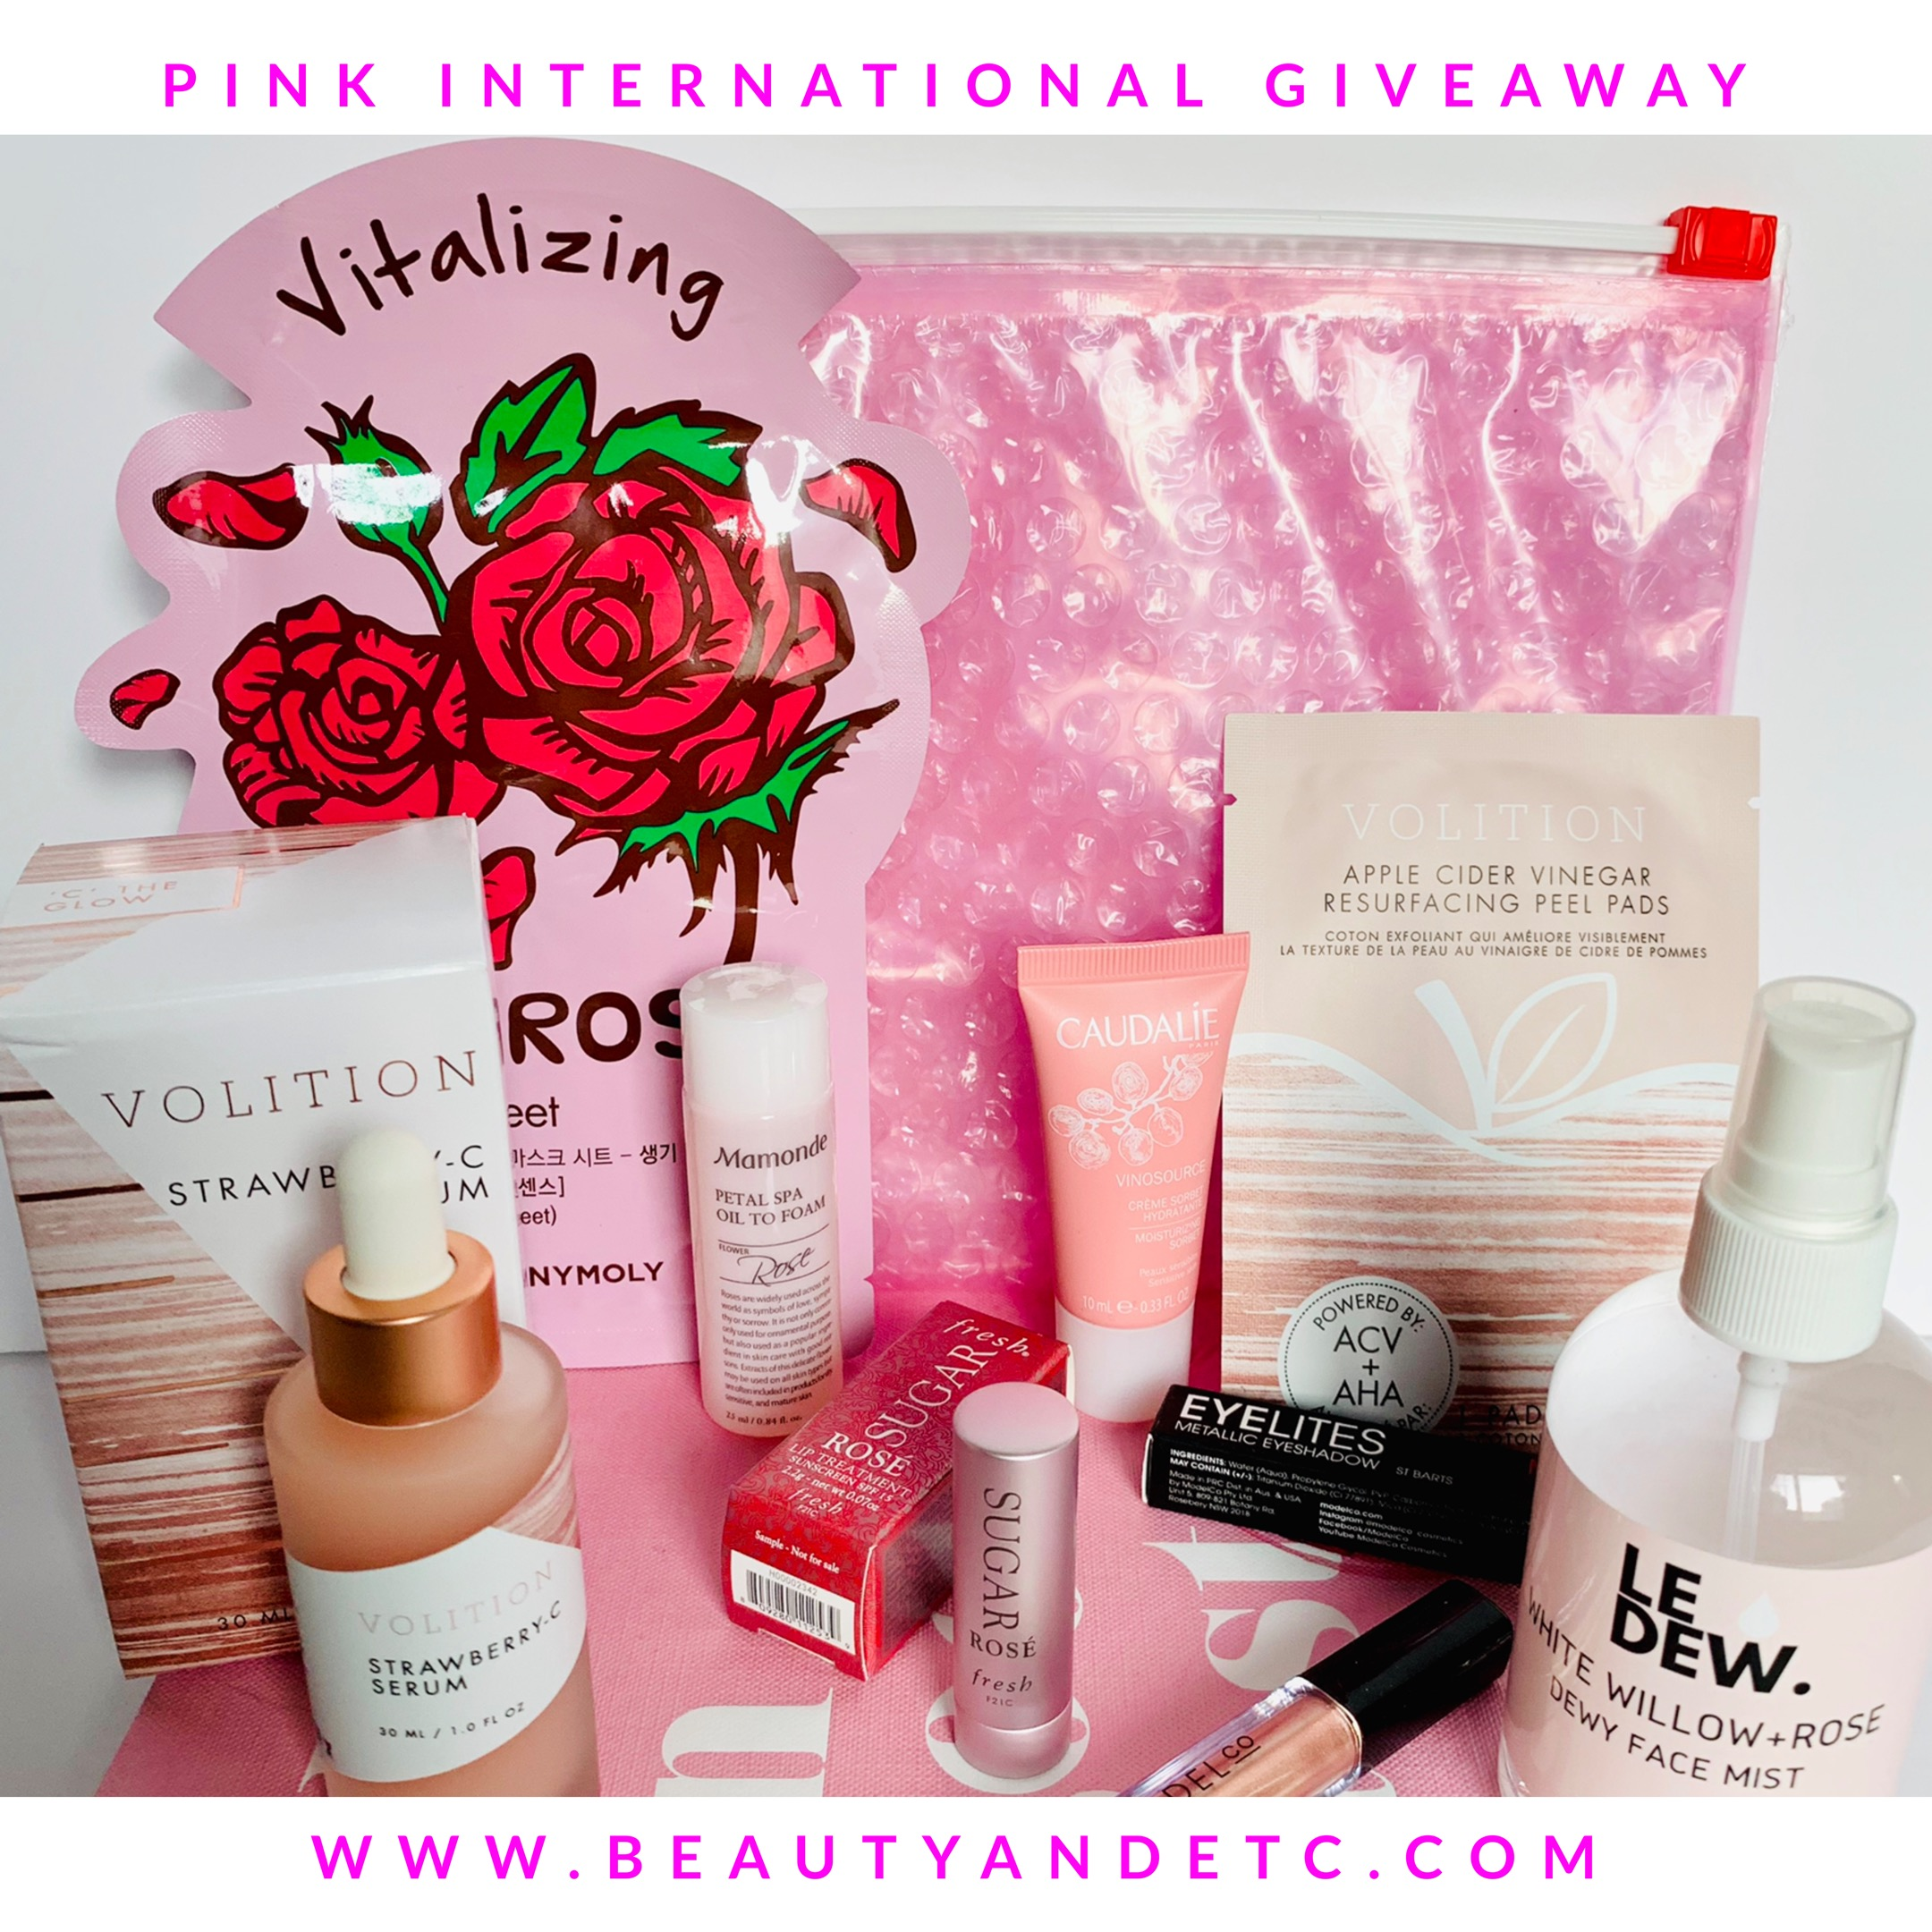 Blog Giveaway - Have you entered my Pink Theme International Giveaway?